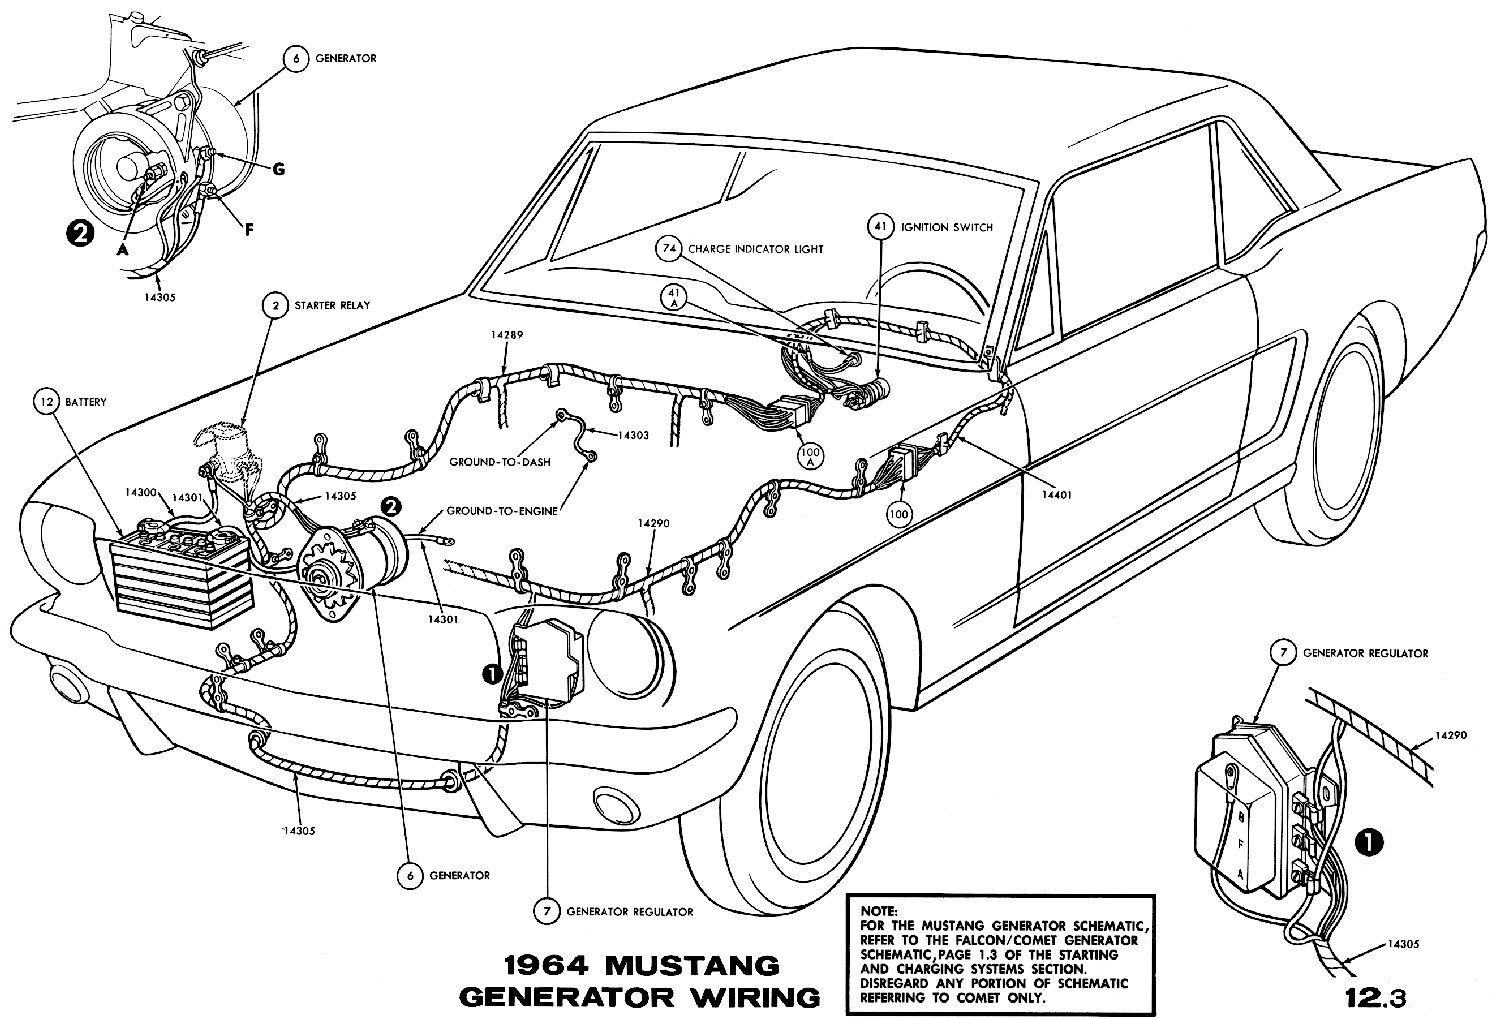 hight resolution of 1964 mustang wiring diagrams average joe restoration 641 2 mustang convertible wiring diagram